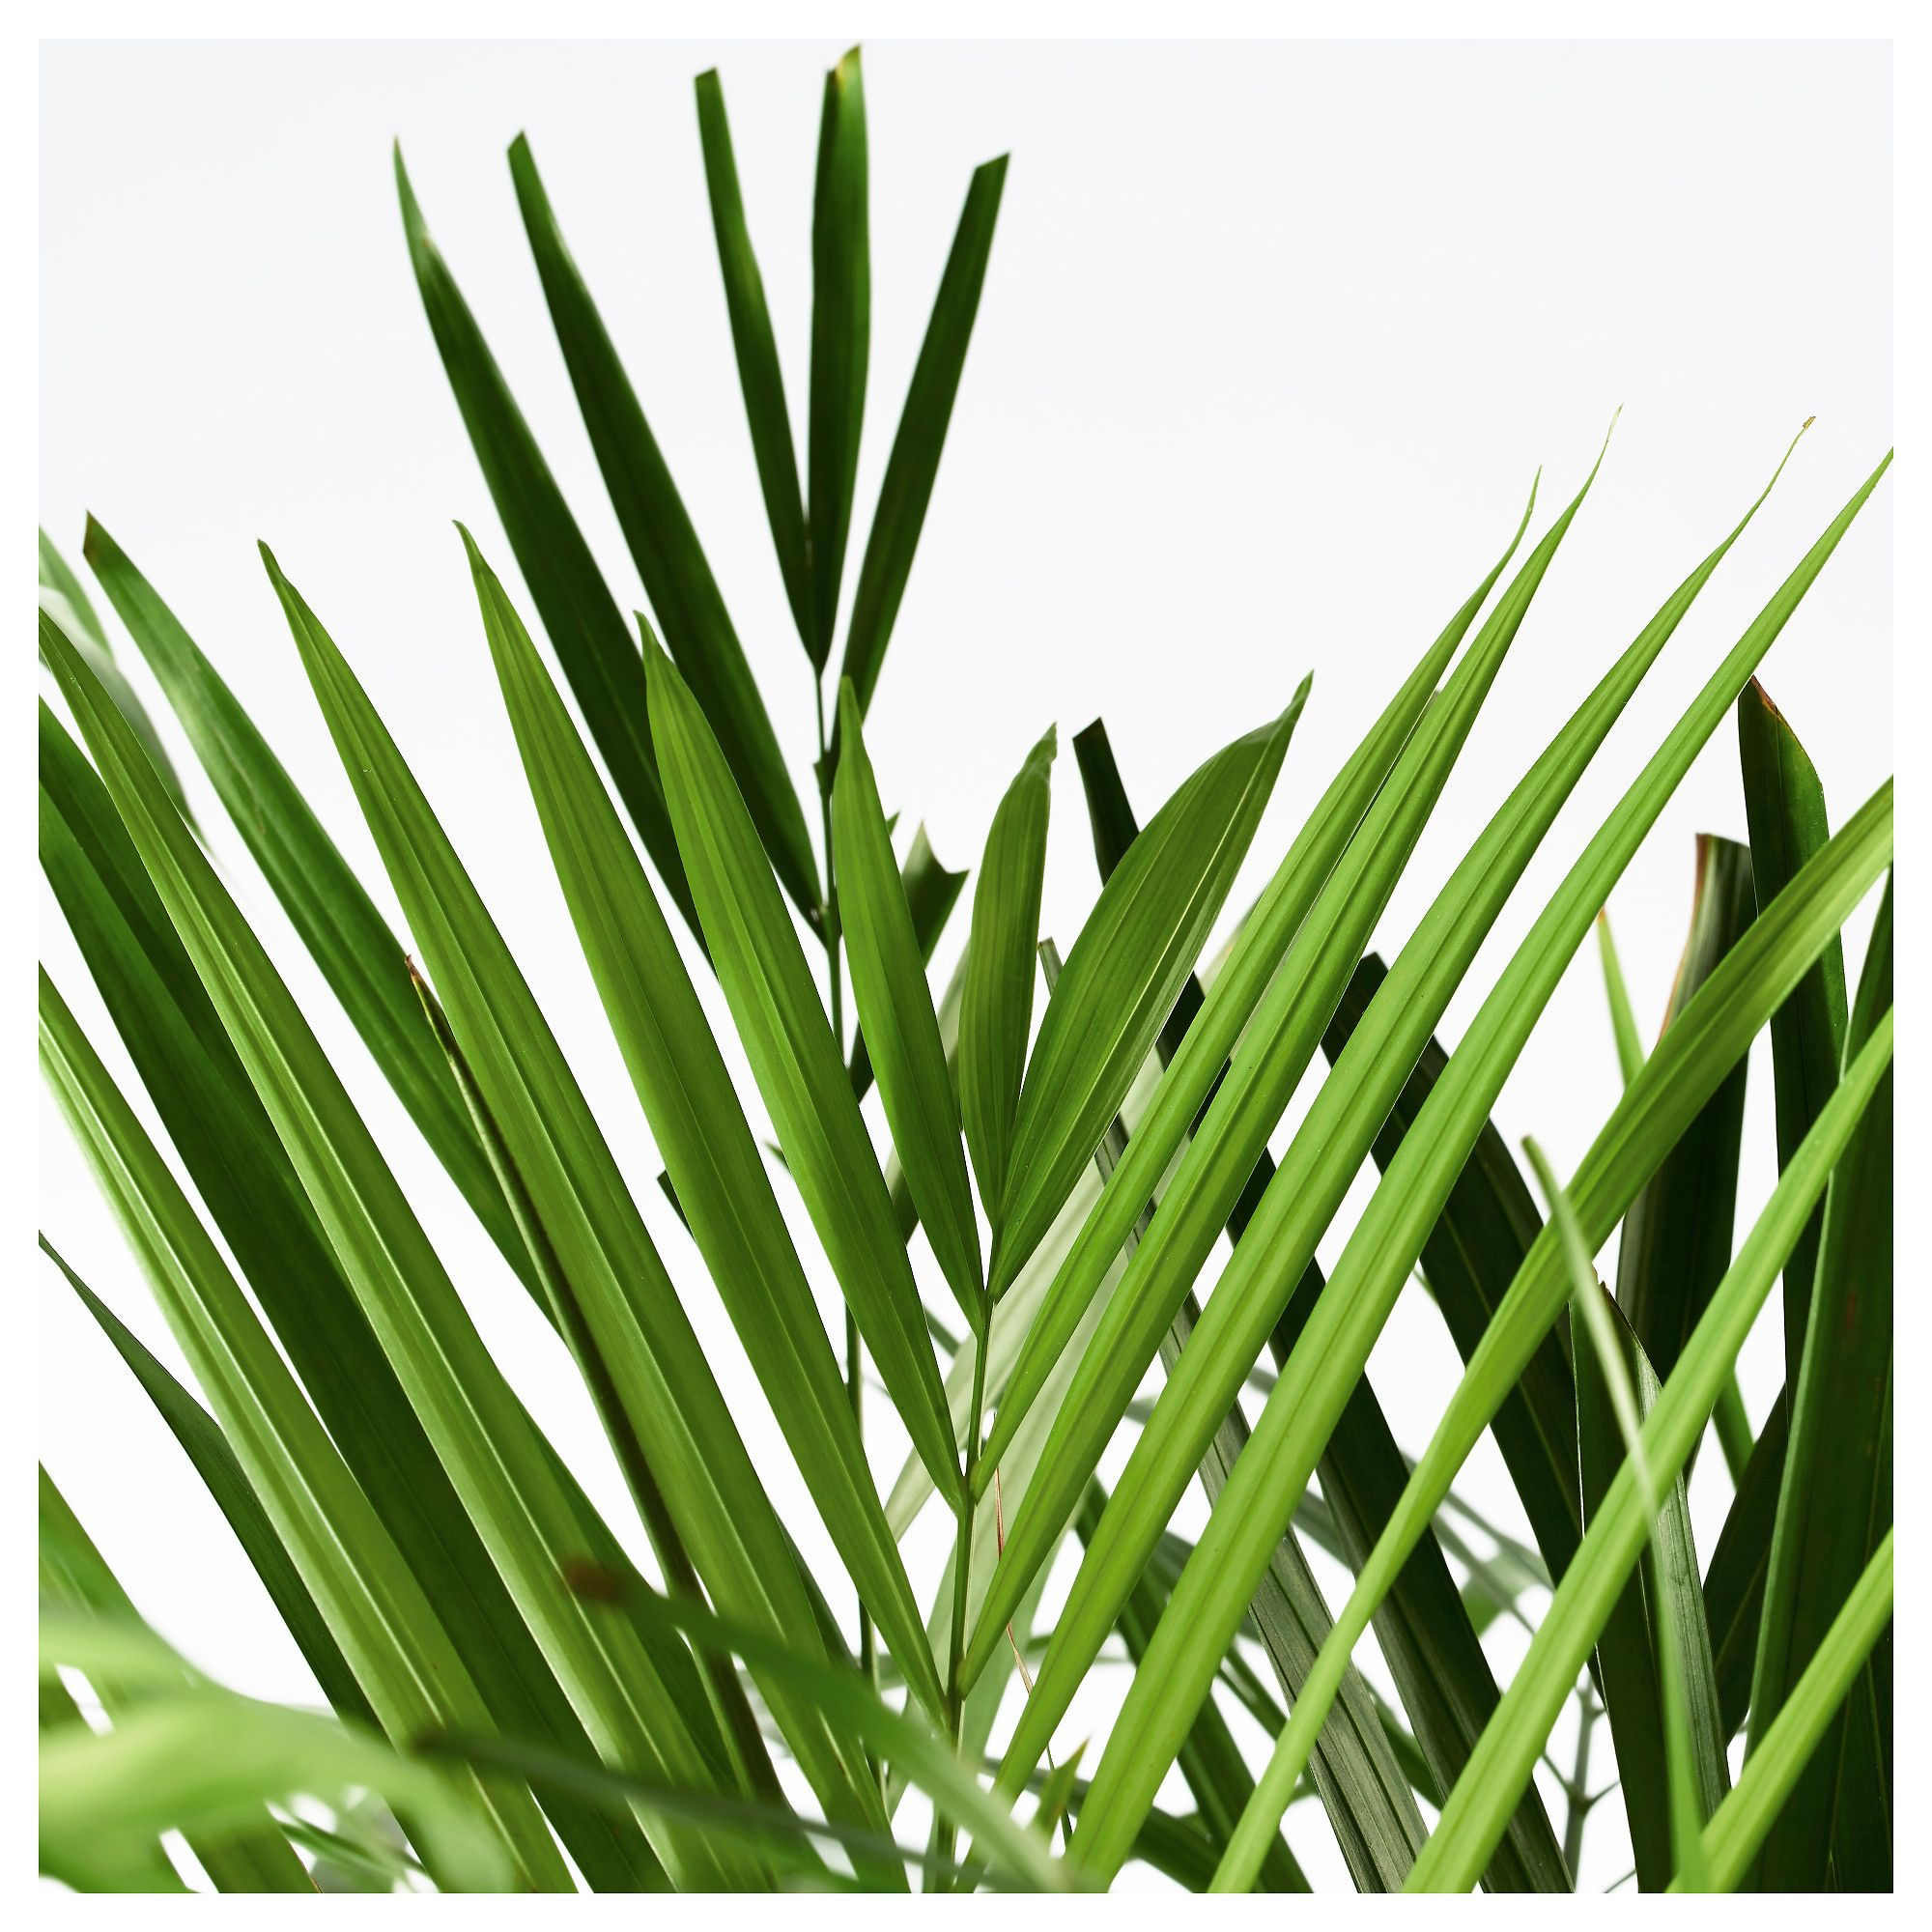 Ikea Palm Tree Dypsis Lutescens Potted Plant Areca Palm 24 Cm Fabulous Foliage